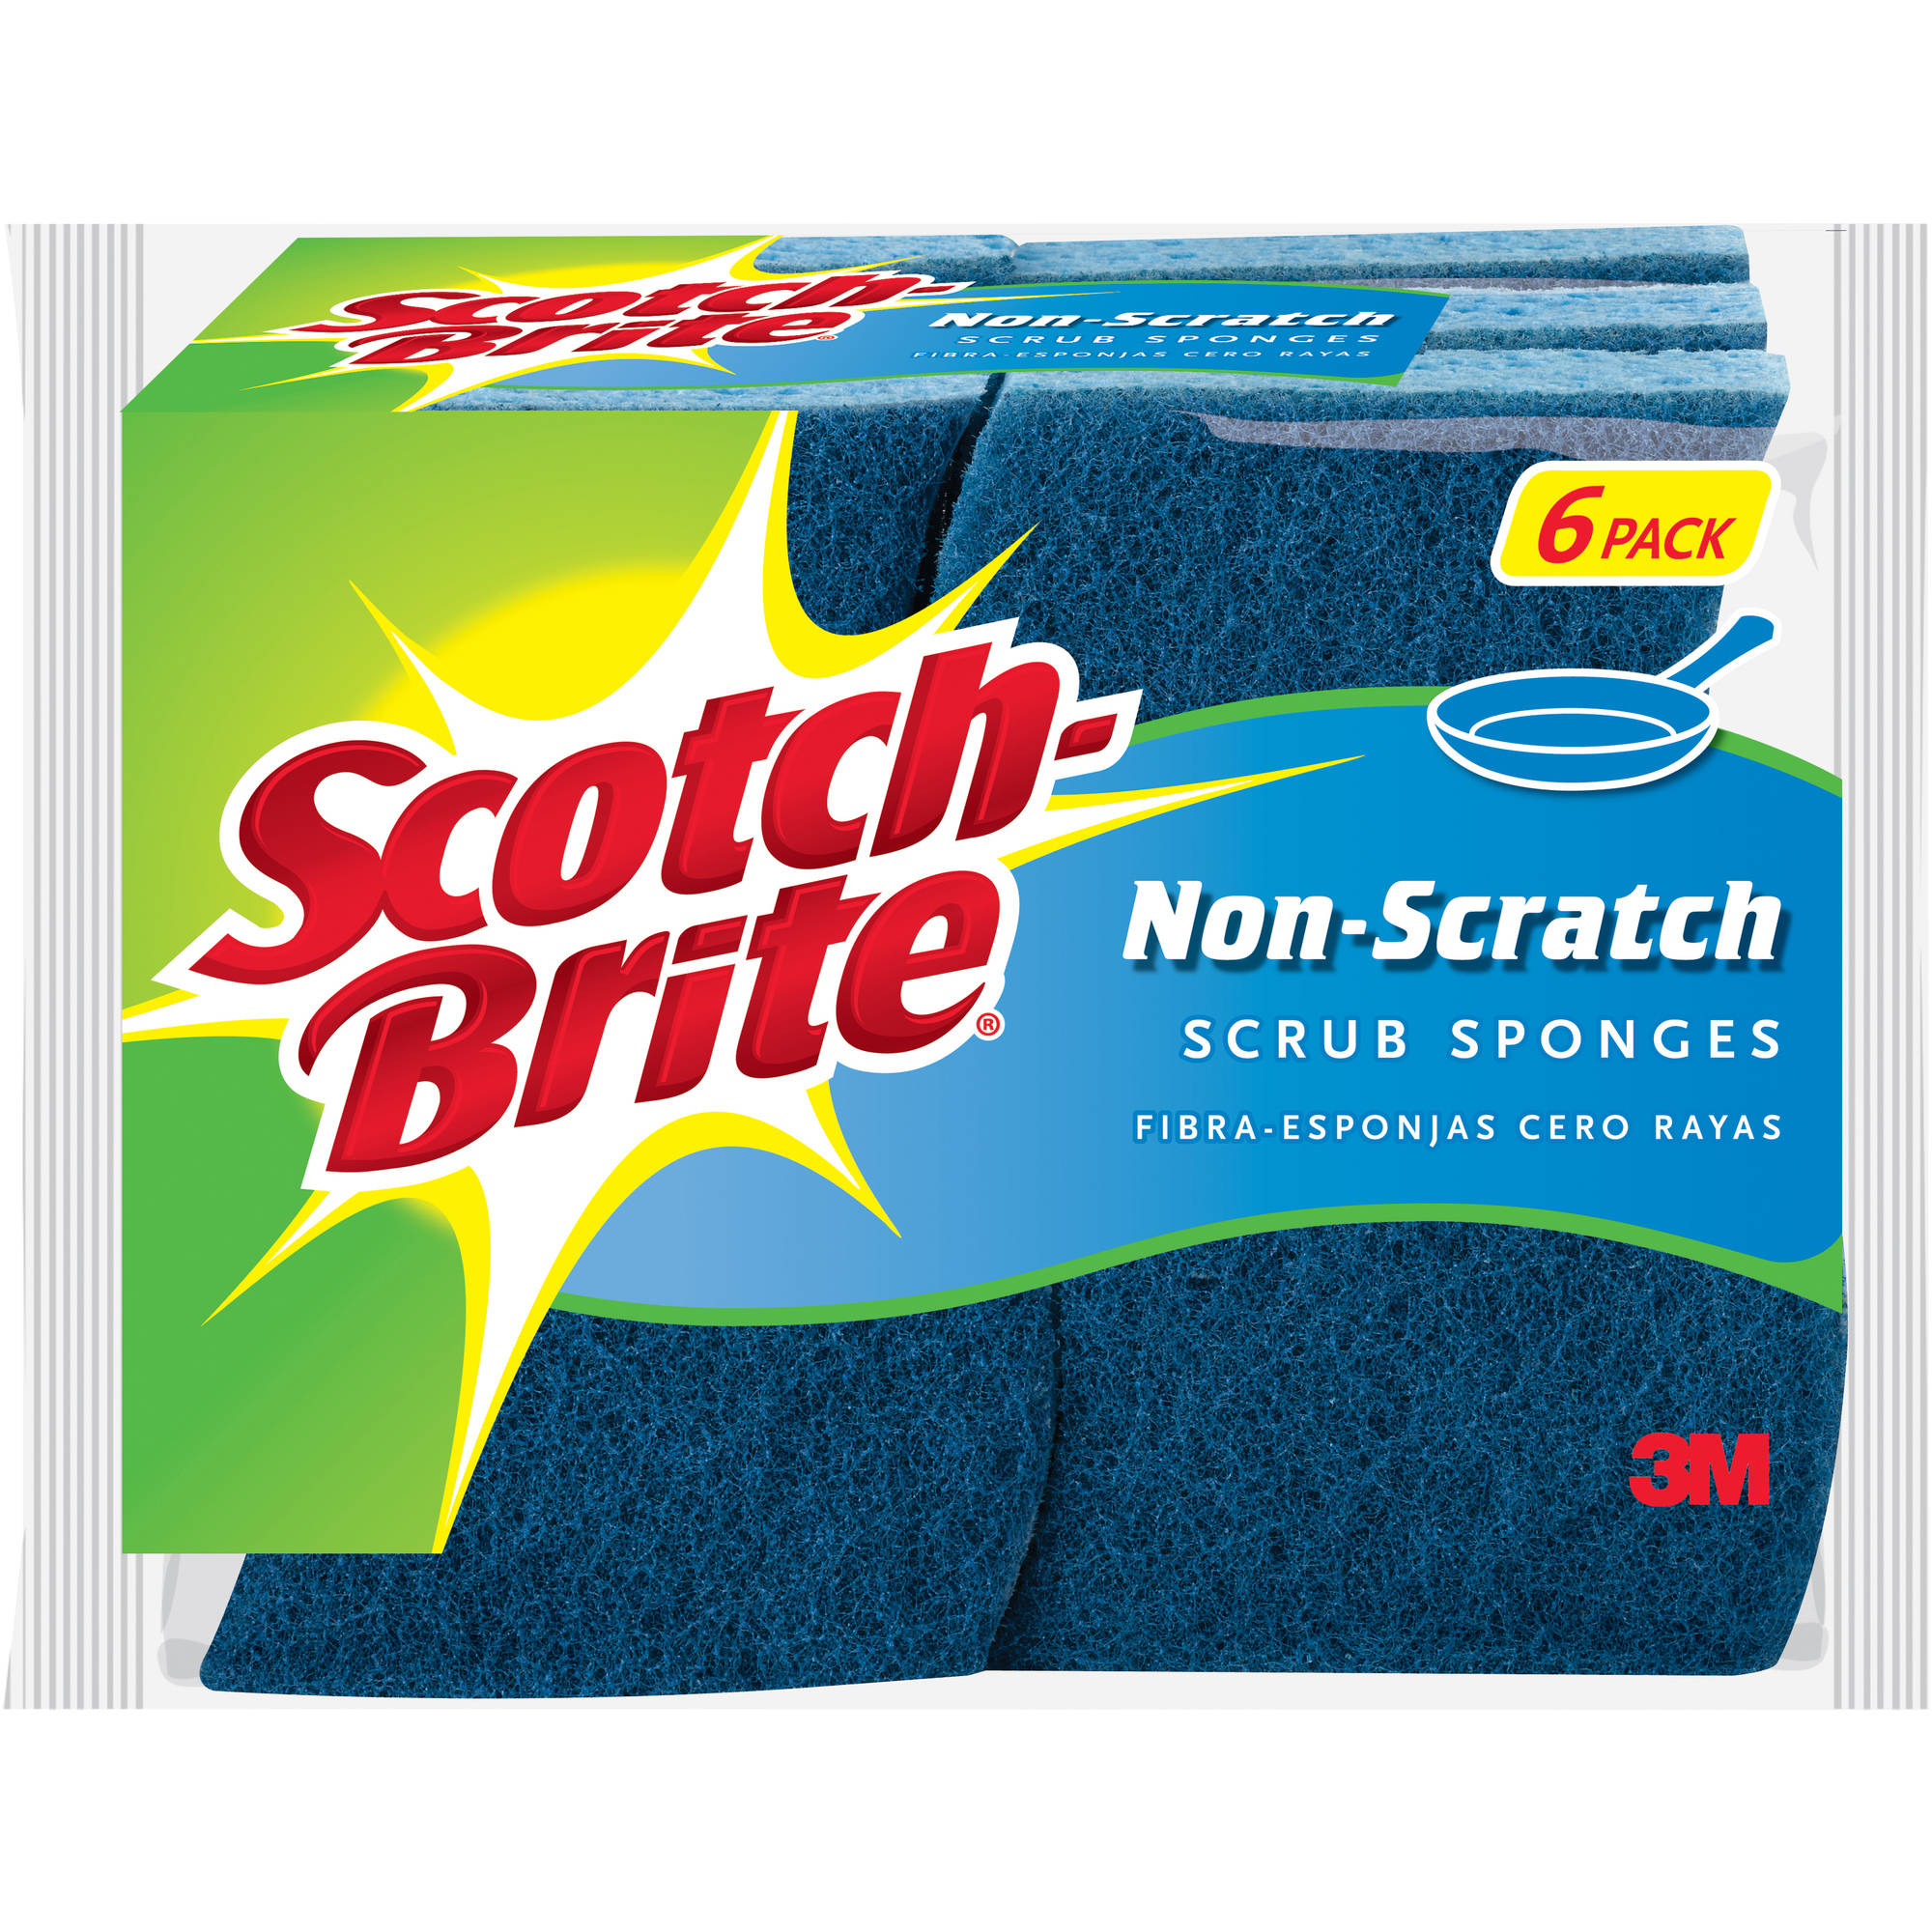 Scotch-Brite No Scratch Multi-Purpose Scrub Sponges, 6 pack